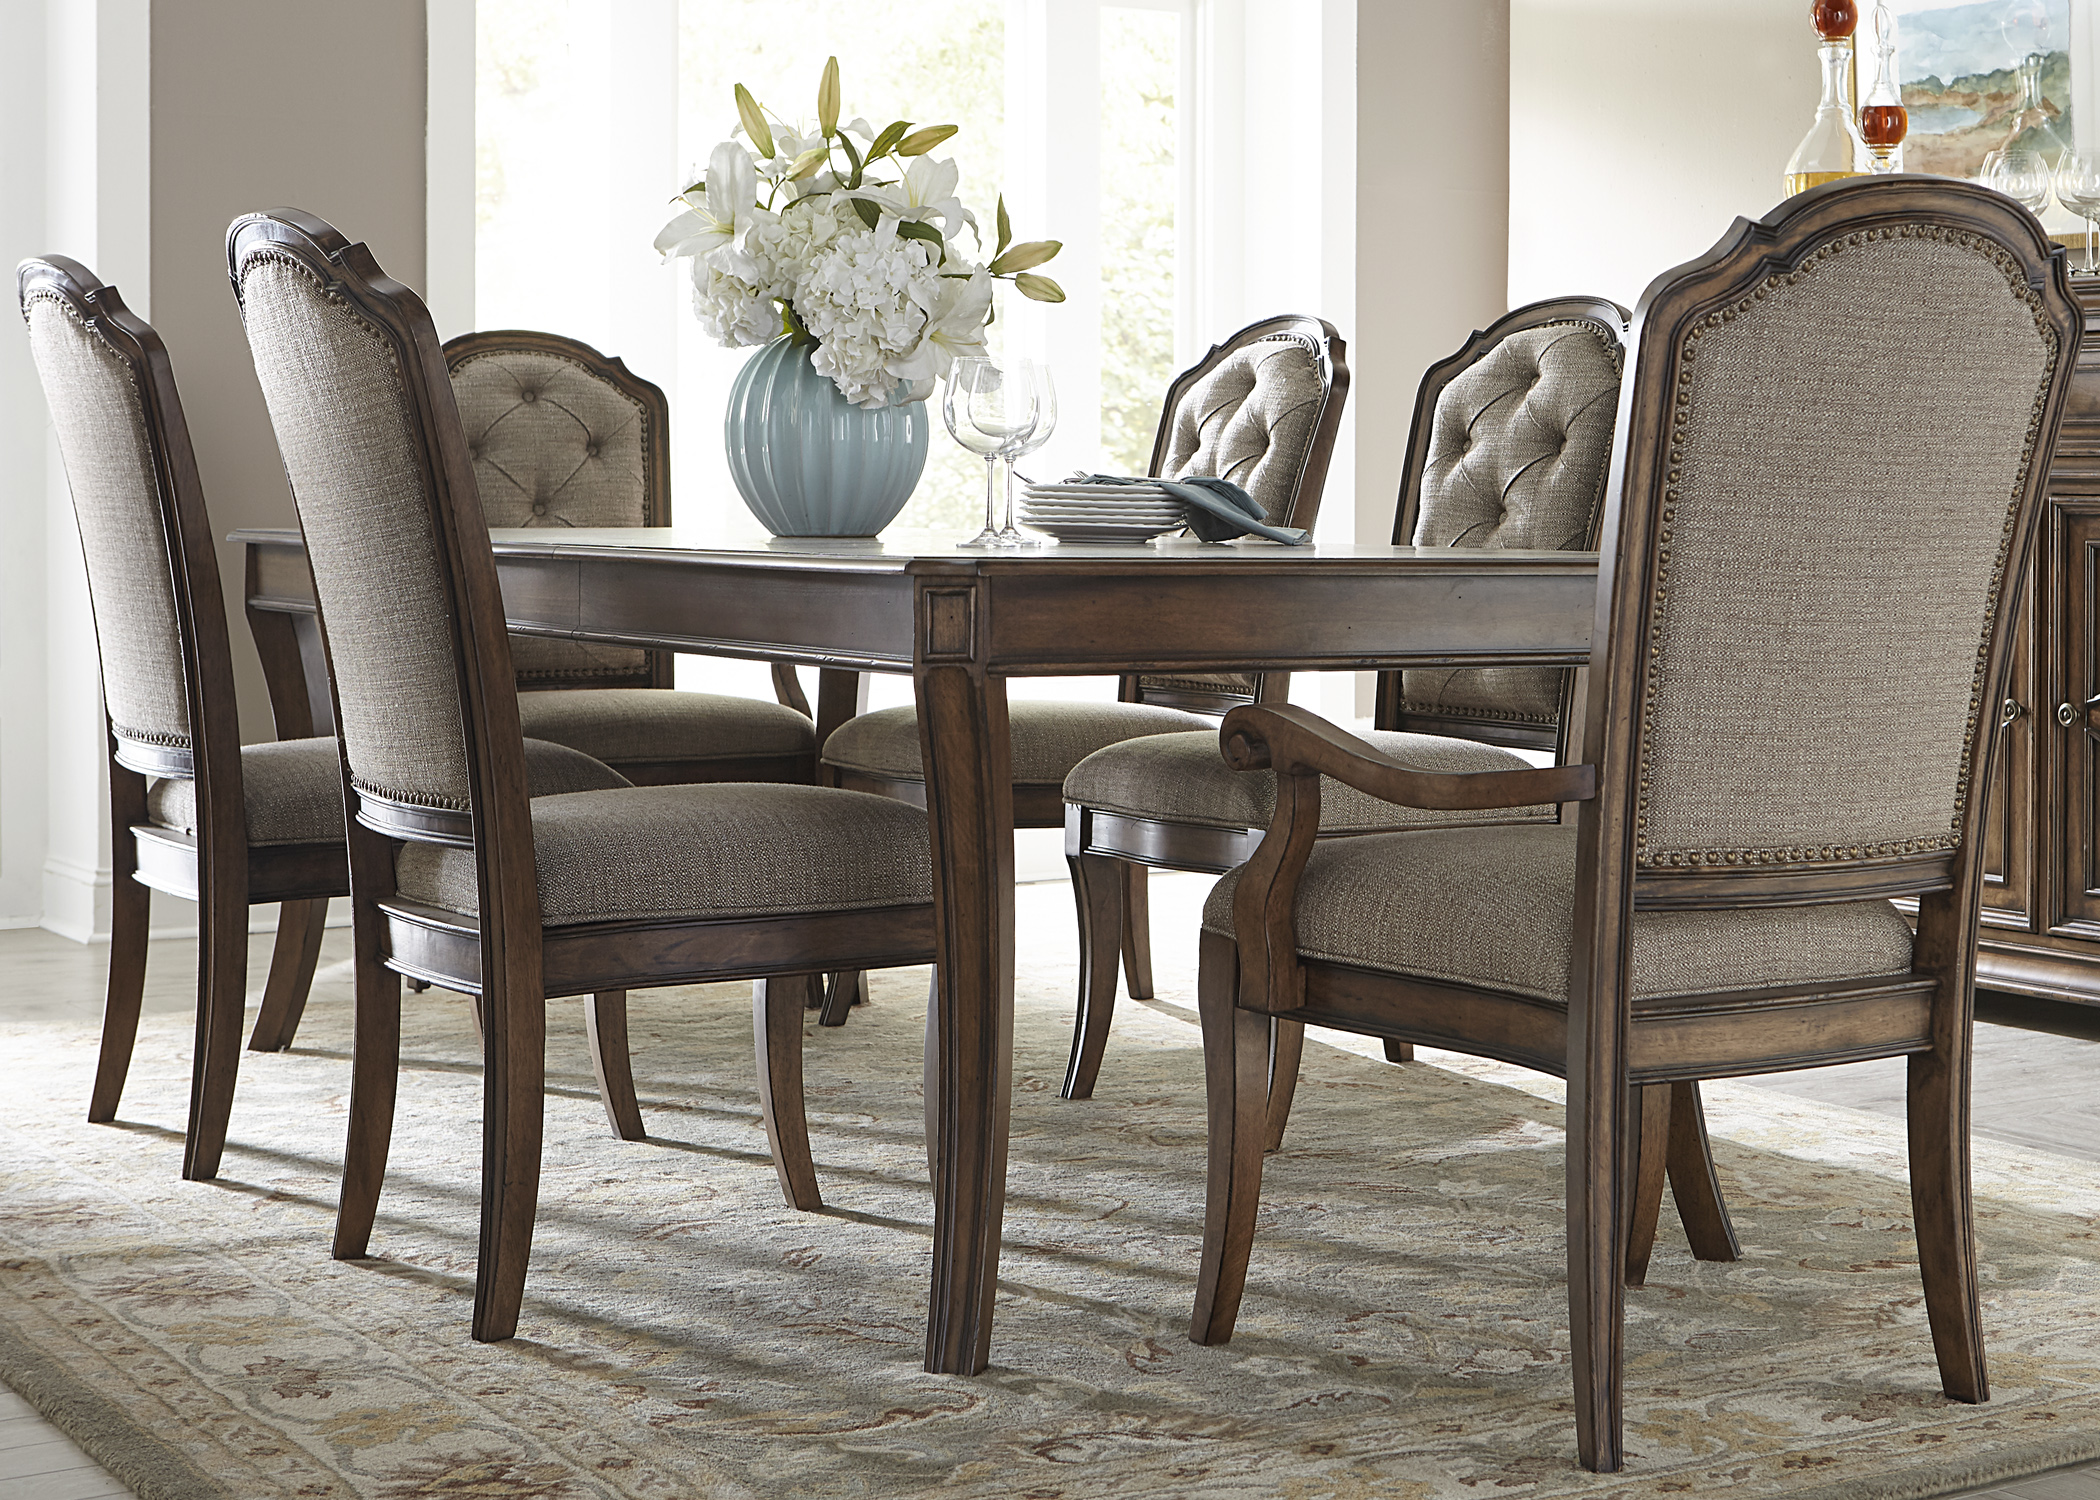 Liberty Furniture Amelia Dining 7 Piece Rectangular Table Set - Item Number: 487-DR-7RLS